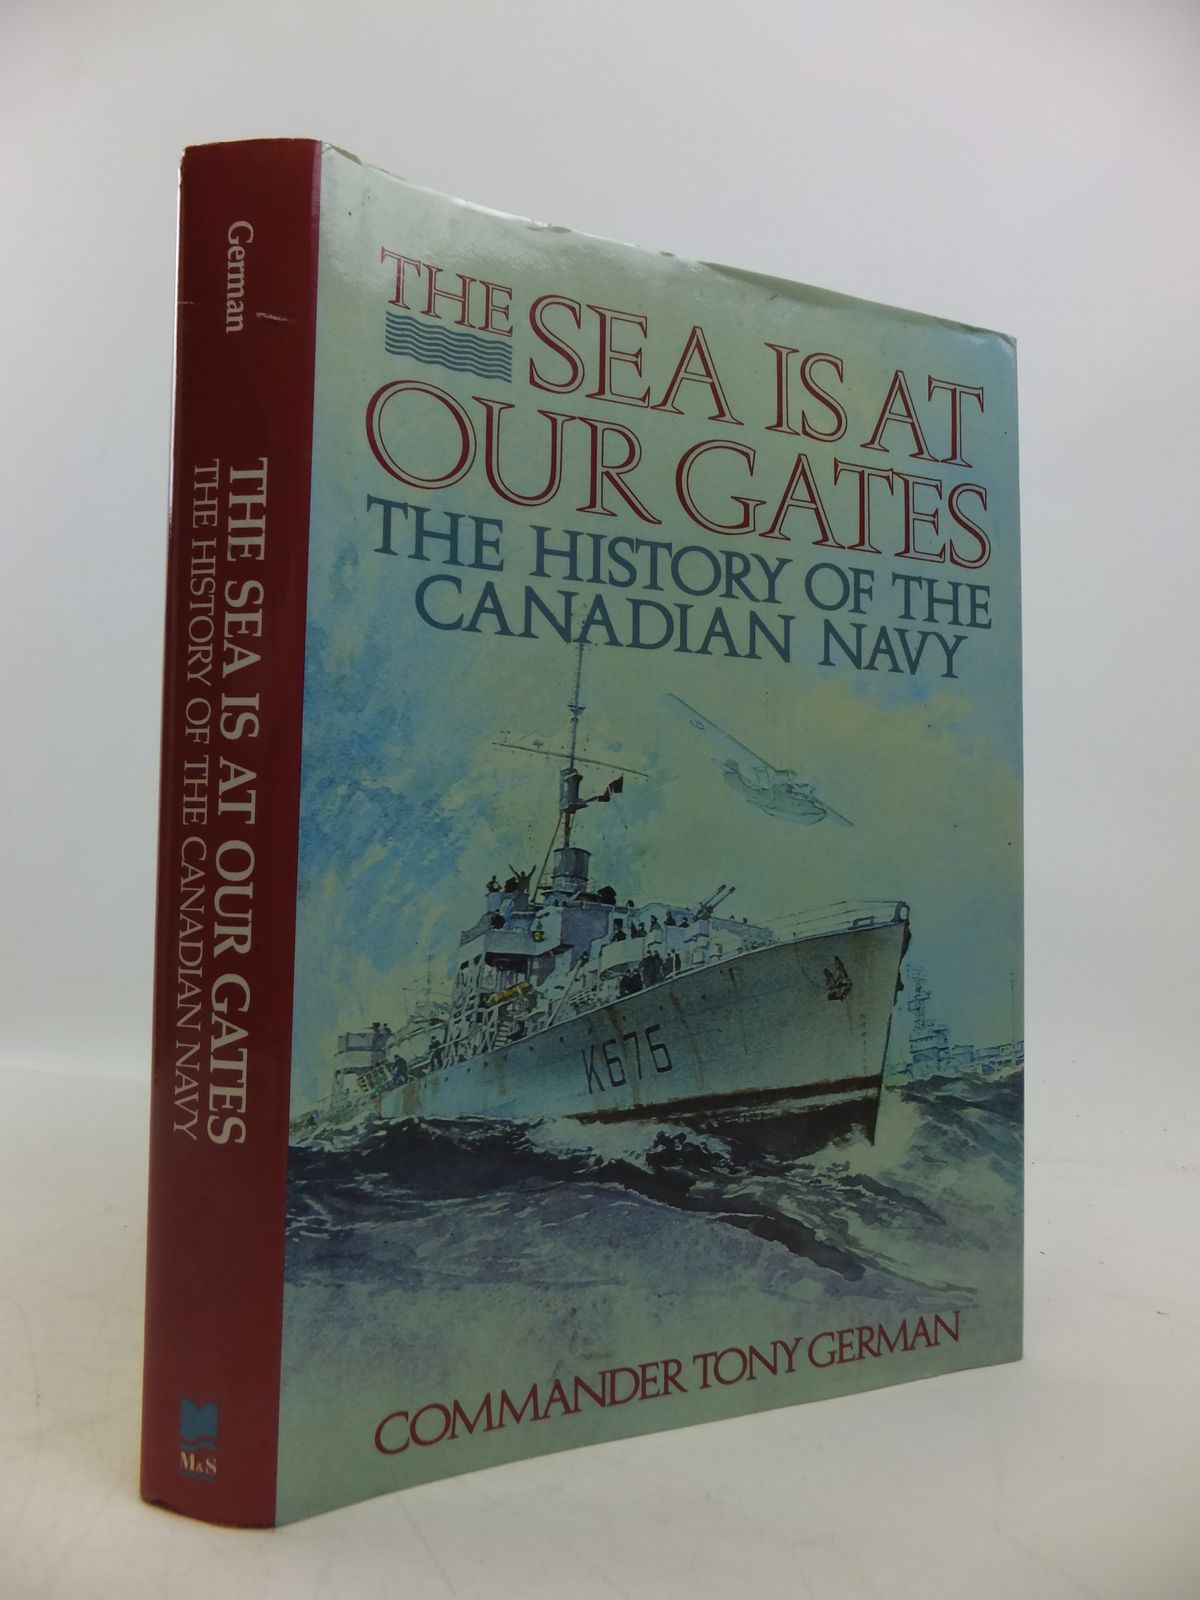 Photo of THE SEA IS AT OUR GATES: THE HISTORY OF THE CANADIAN NAVY written by German, Tony published by McClelland & Stewart (STOCK CODE: 1811627)  for sale by Stella & Rose's Books